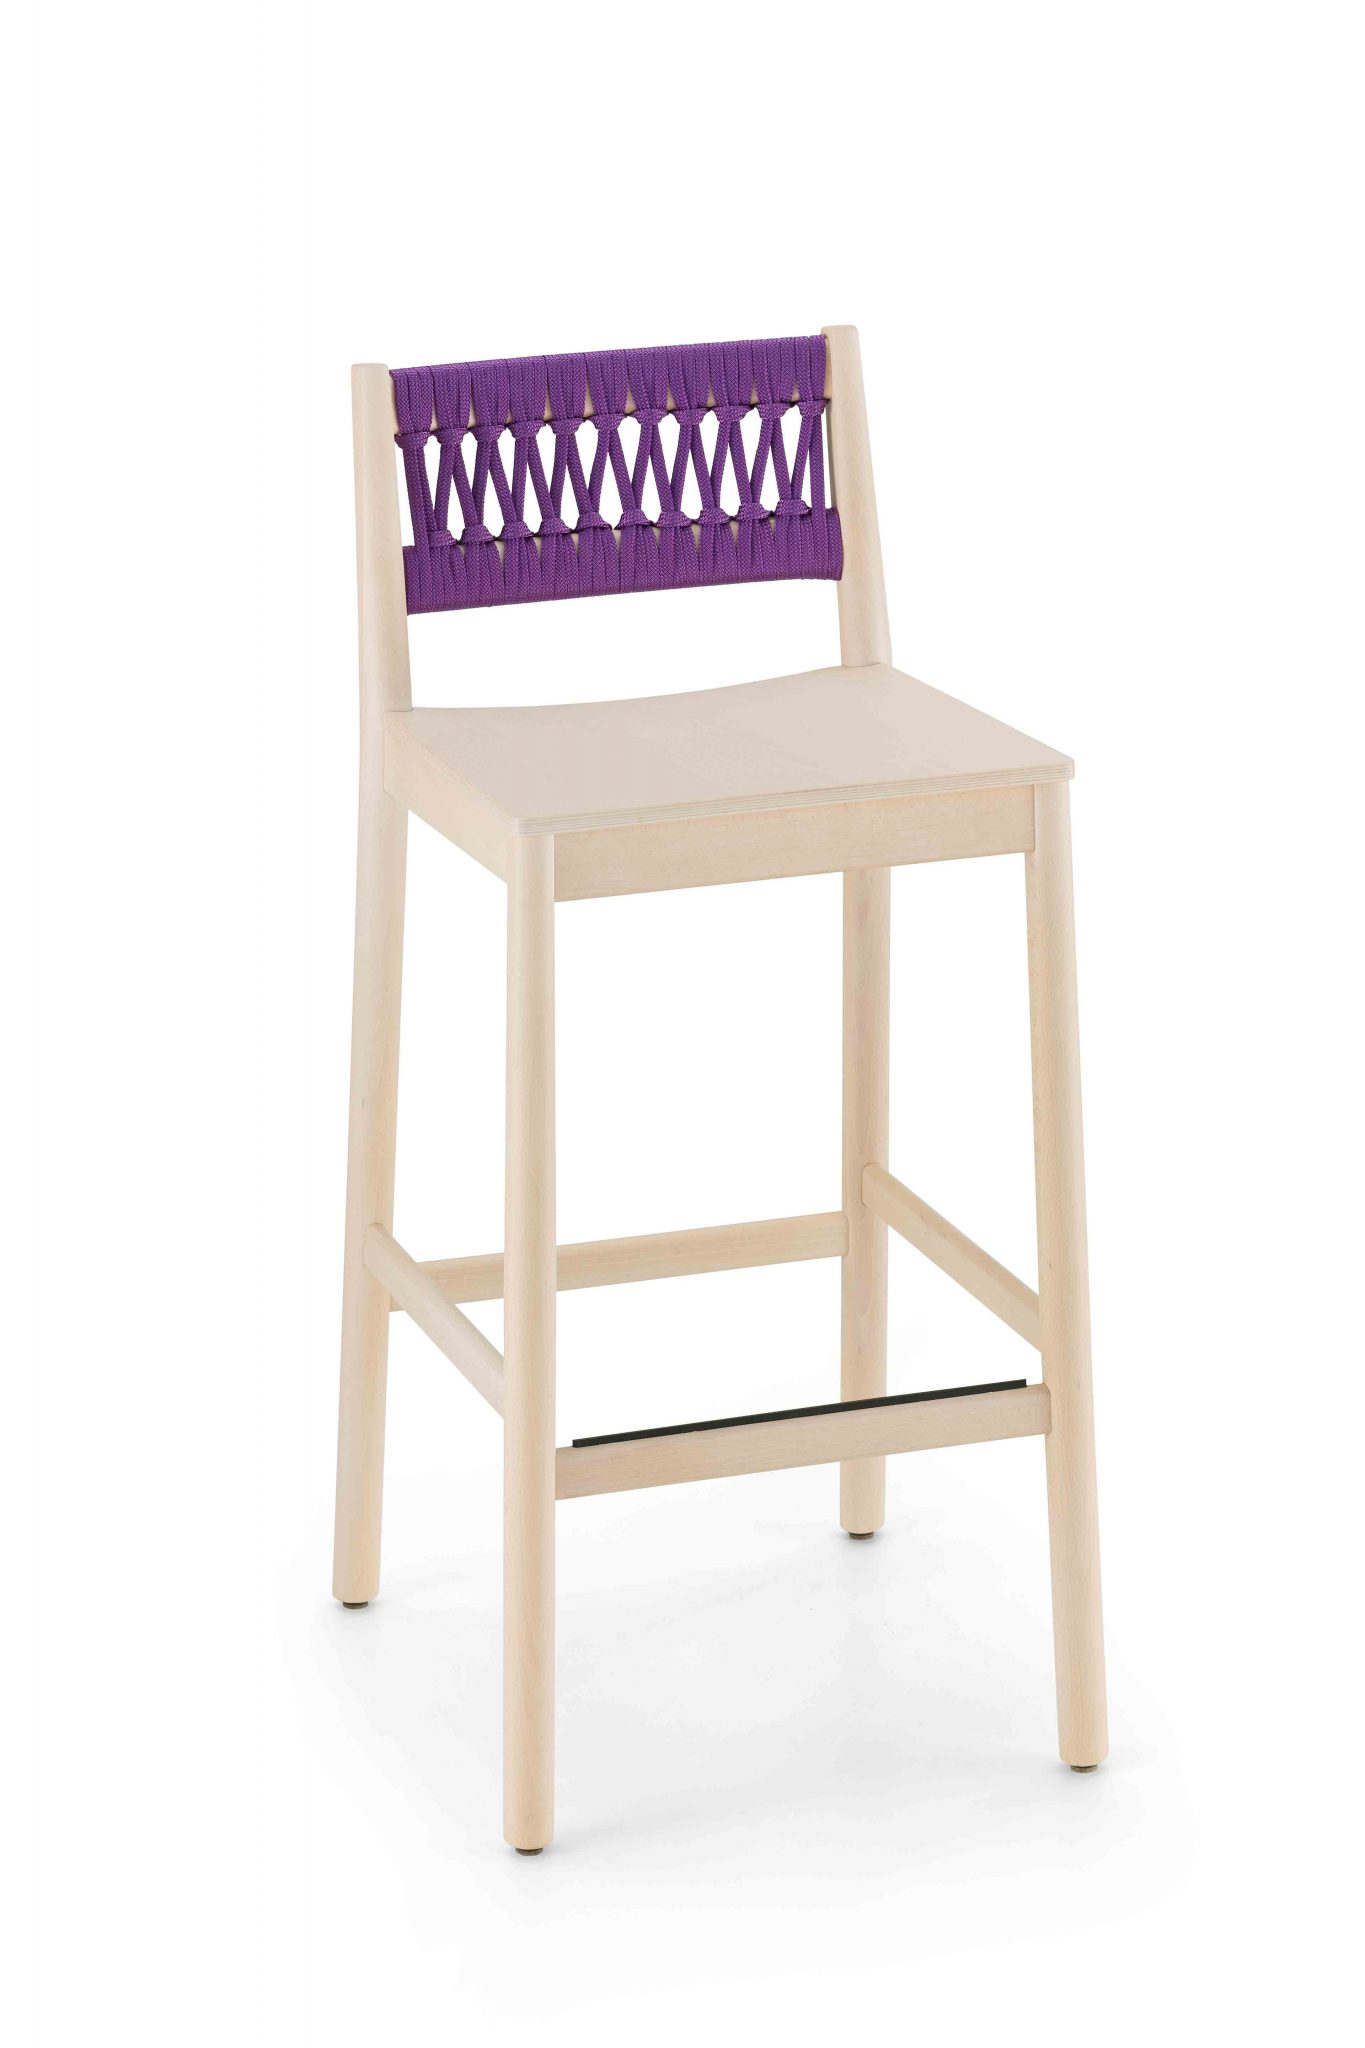 0028-IN-H76-JULIE-stool-in-beech-painted-and-seat-wood,-back-to-rope,-stool-in-beech-painted-and-wood-seat,-back-in-rope